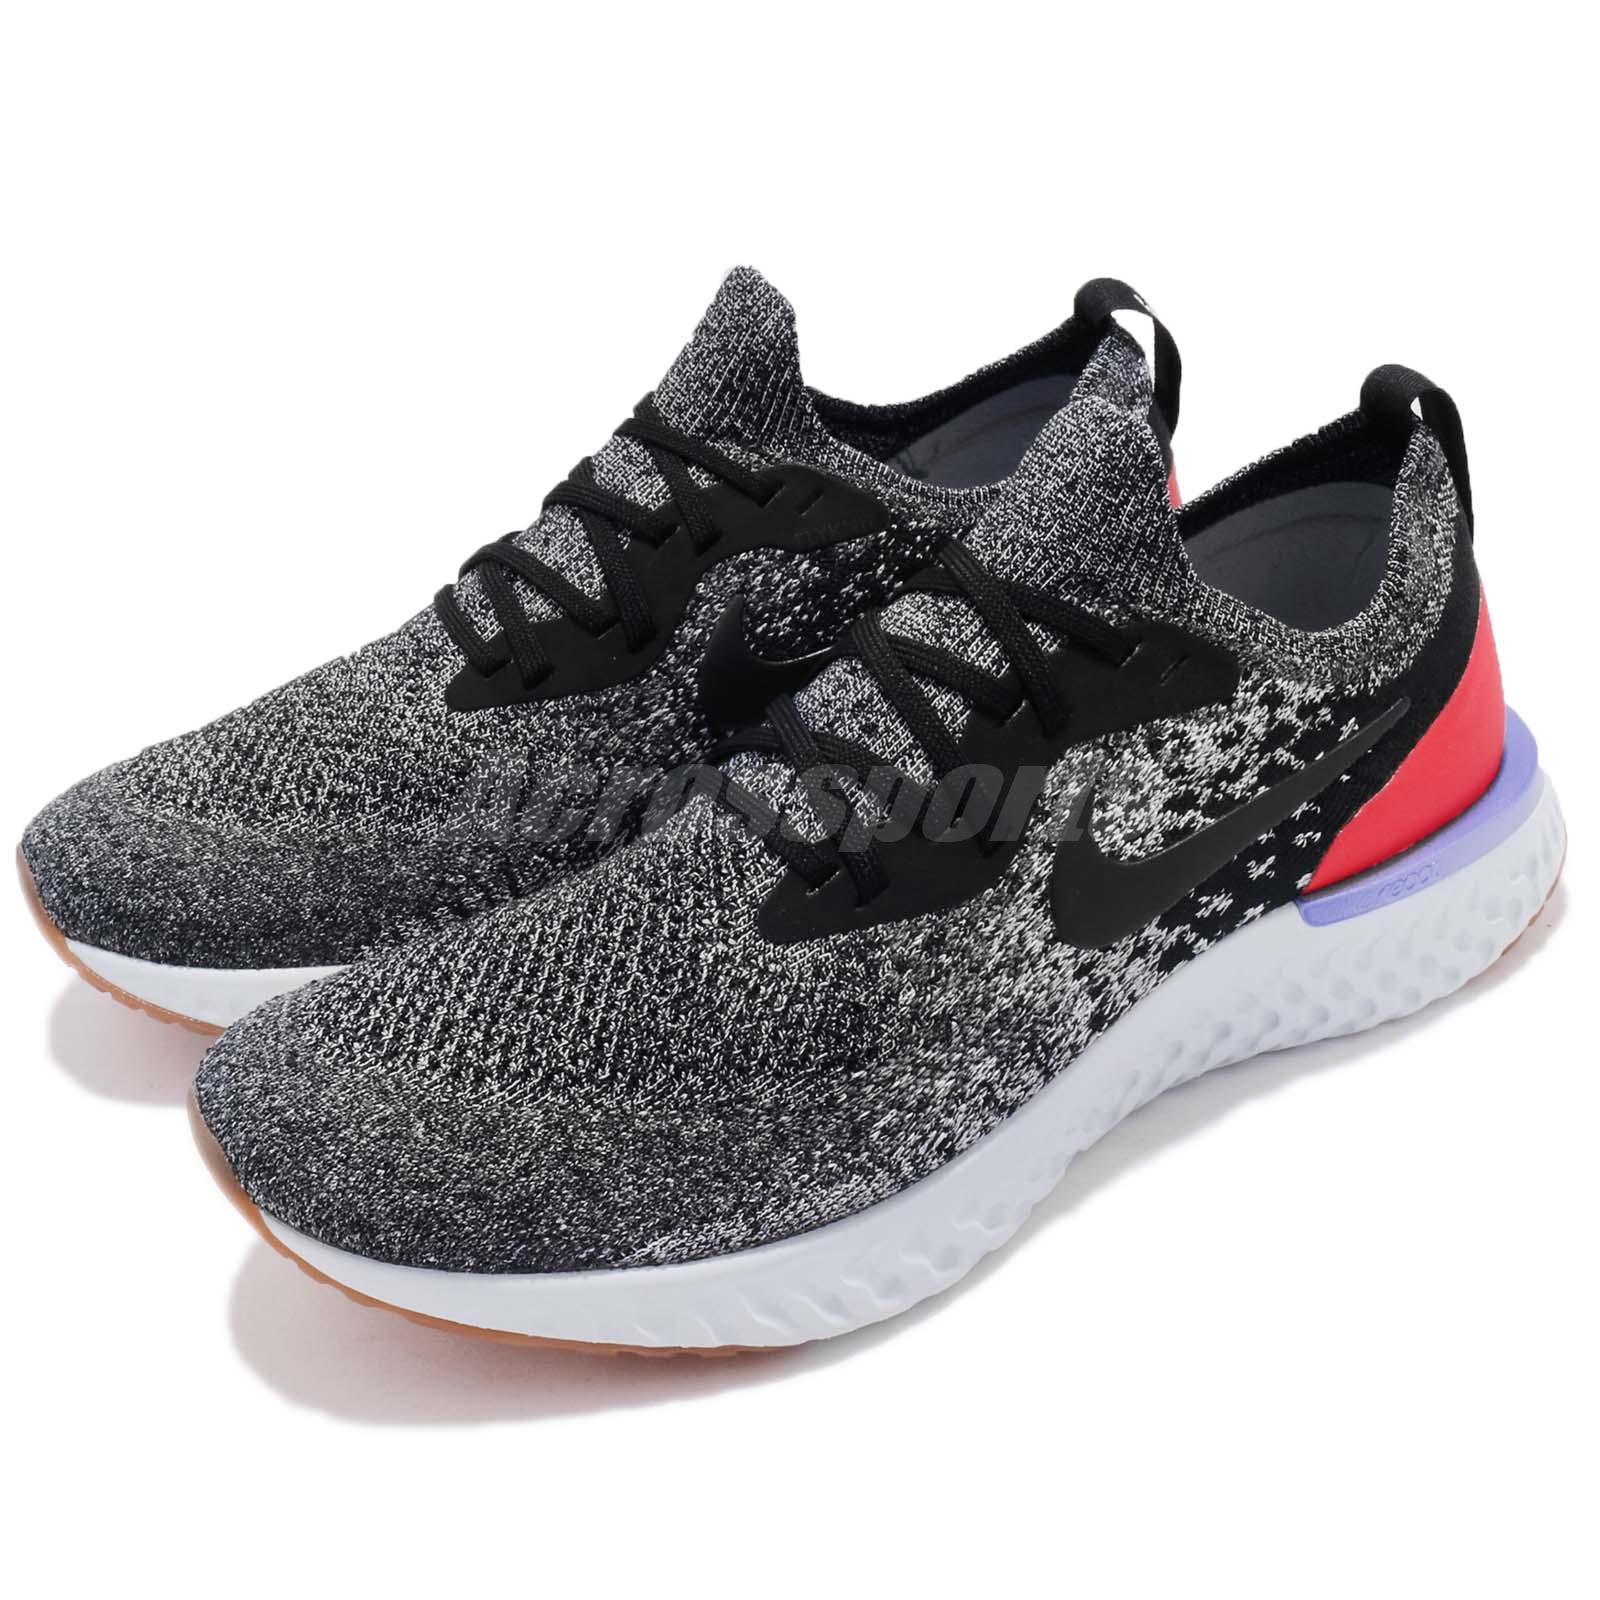 28f0e0f73bc1 Details about Nike Epic React Flyknit Black White Orbit Grey Men Running  Sneakers AQ0067-006